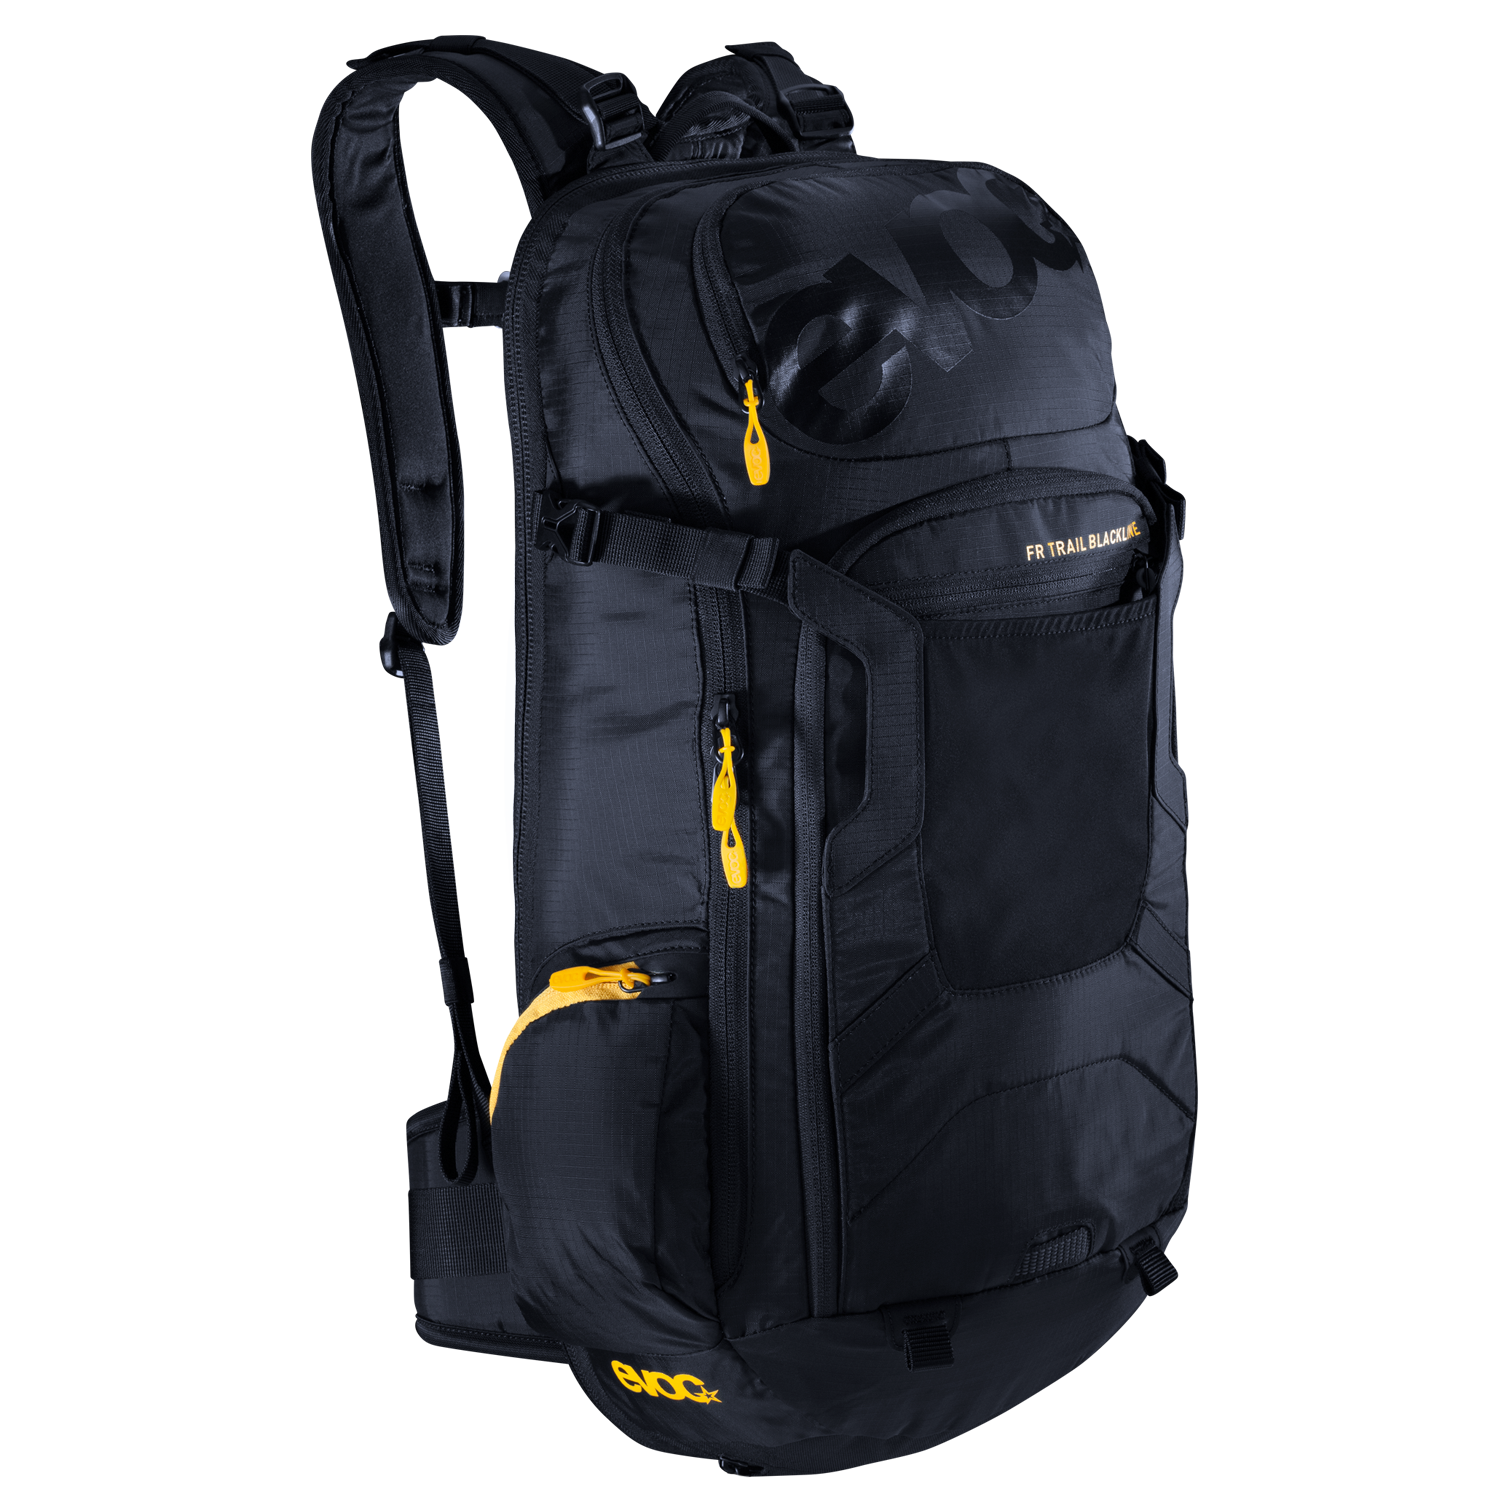 FR TRAIL BLACKLINE 20l - The EVOC FR TRAIL BLACKLINE is a high-end day pack with a back protector that offers optimal support during longer bike tours and trail rides.